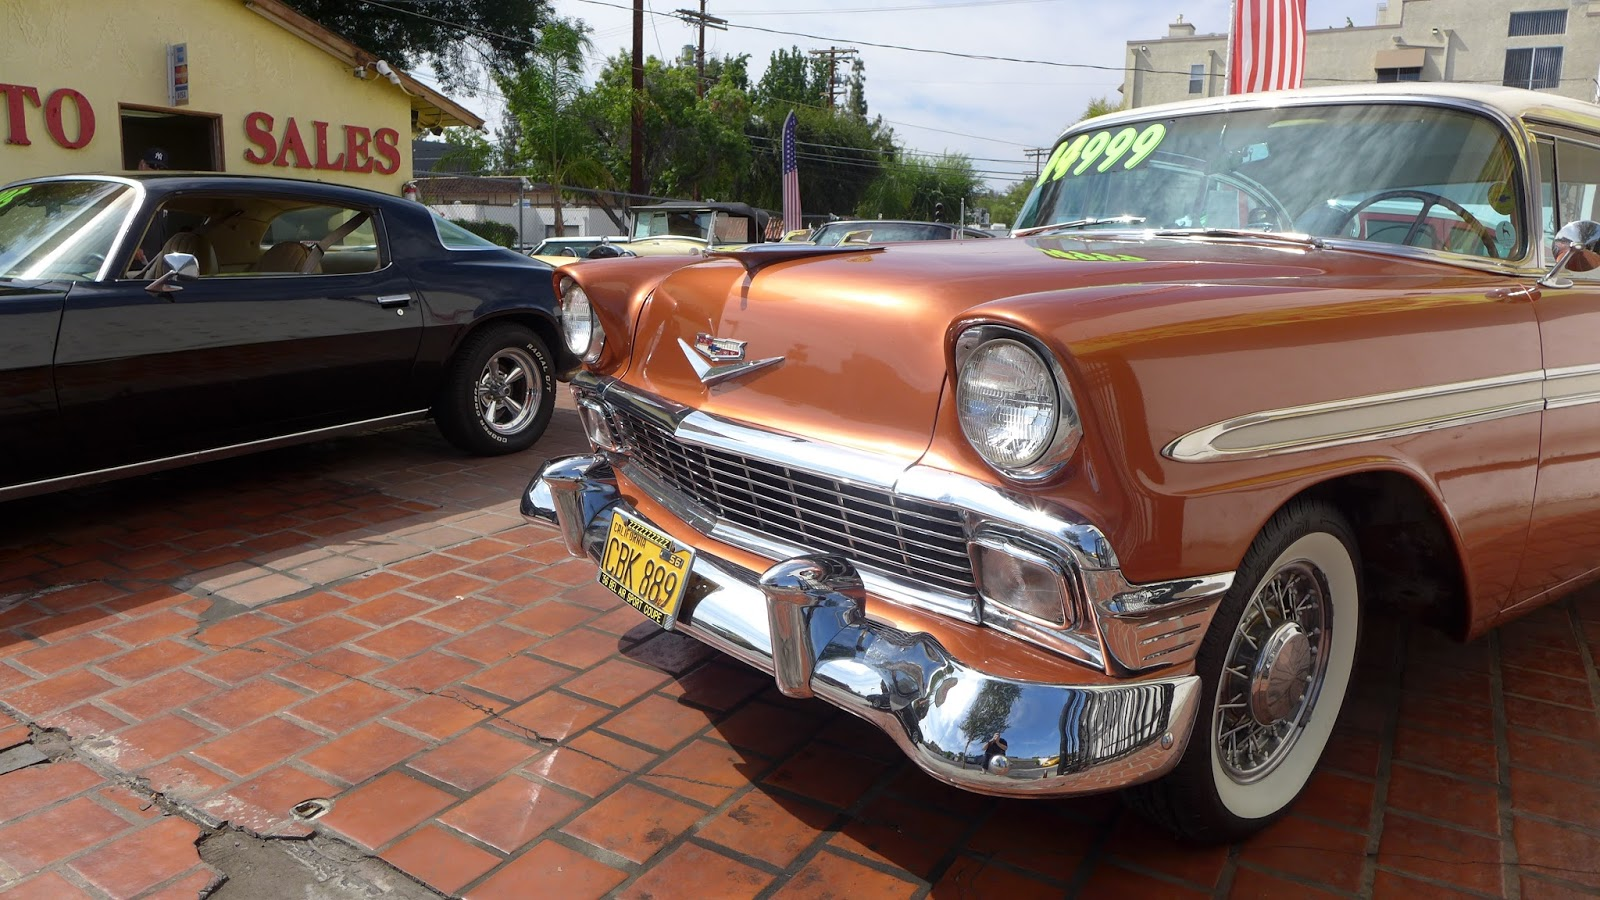 55 Chevy For Sale - West Hills, CA